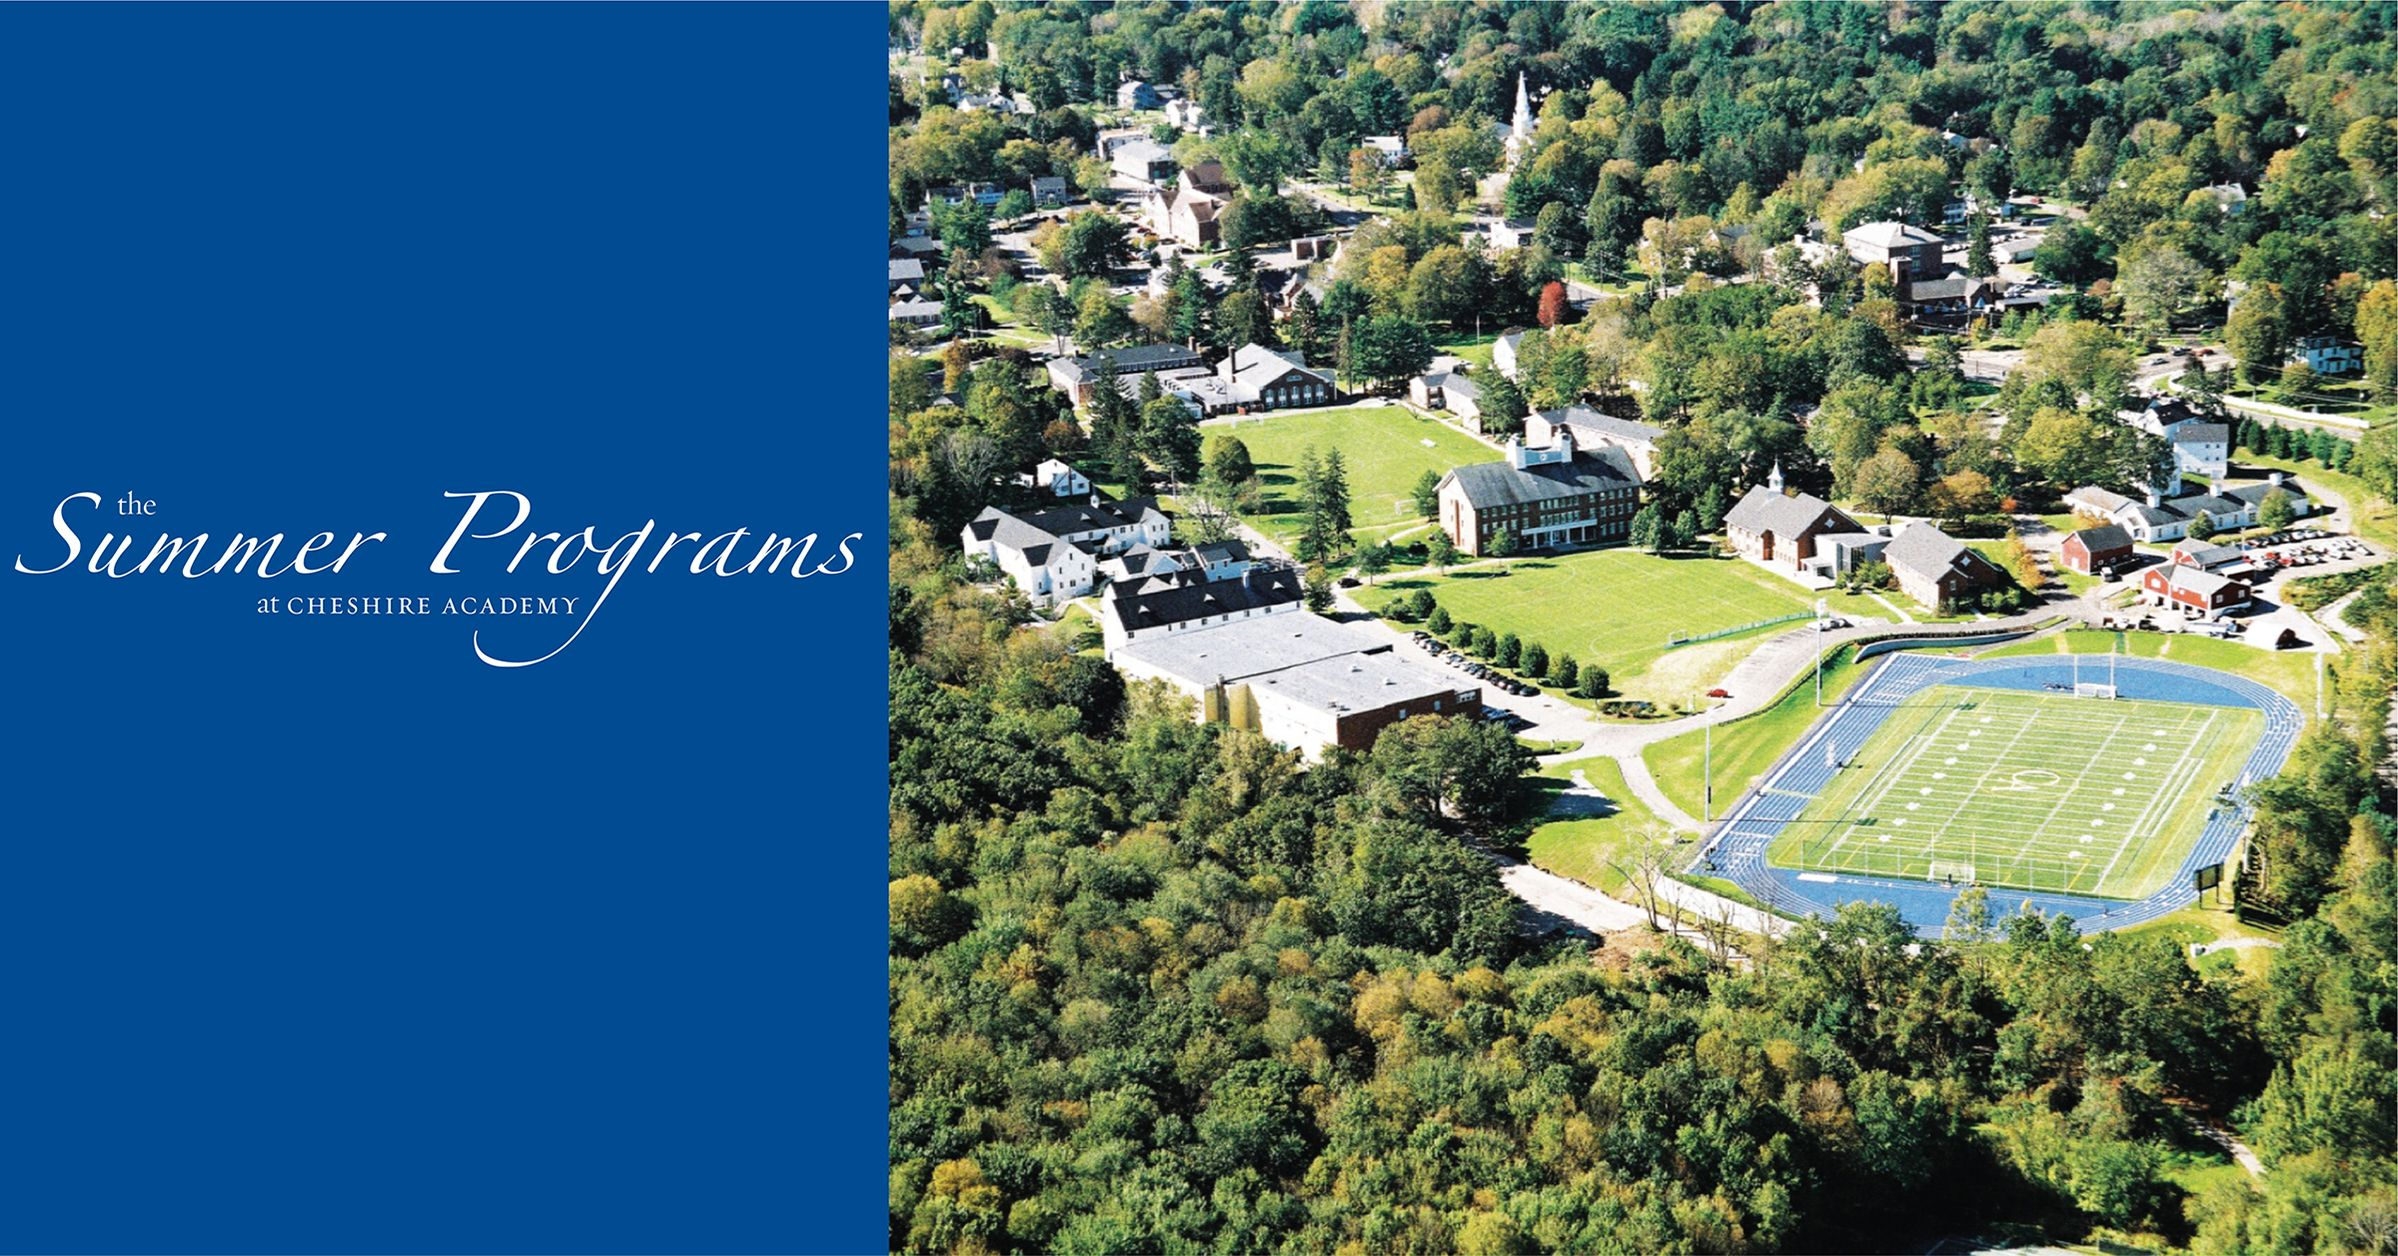 The Summer Programs at Cheshire Academy